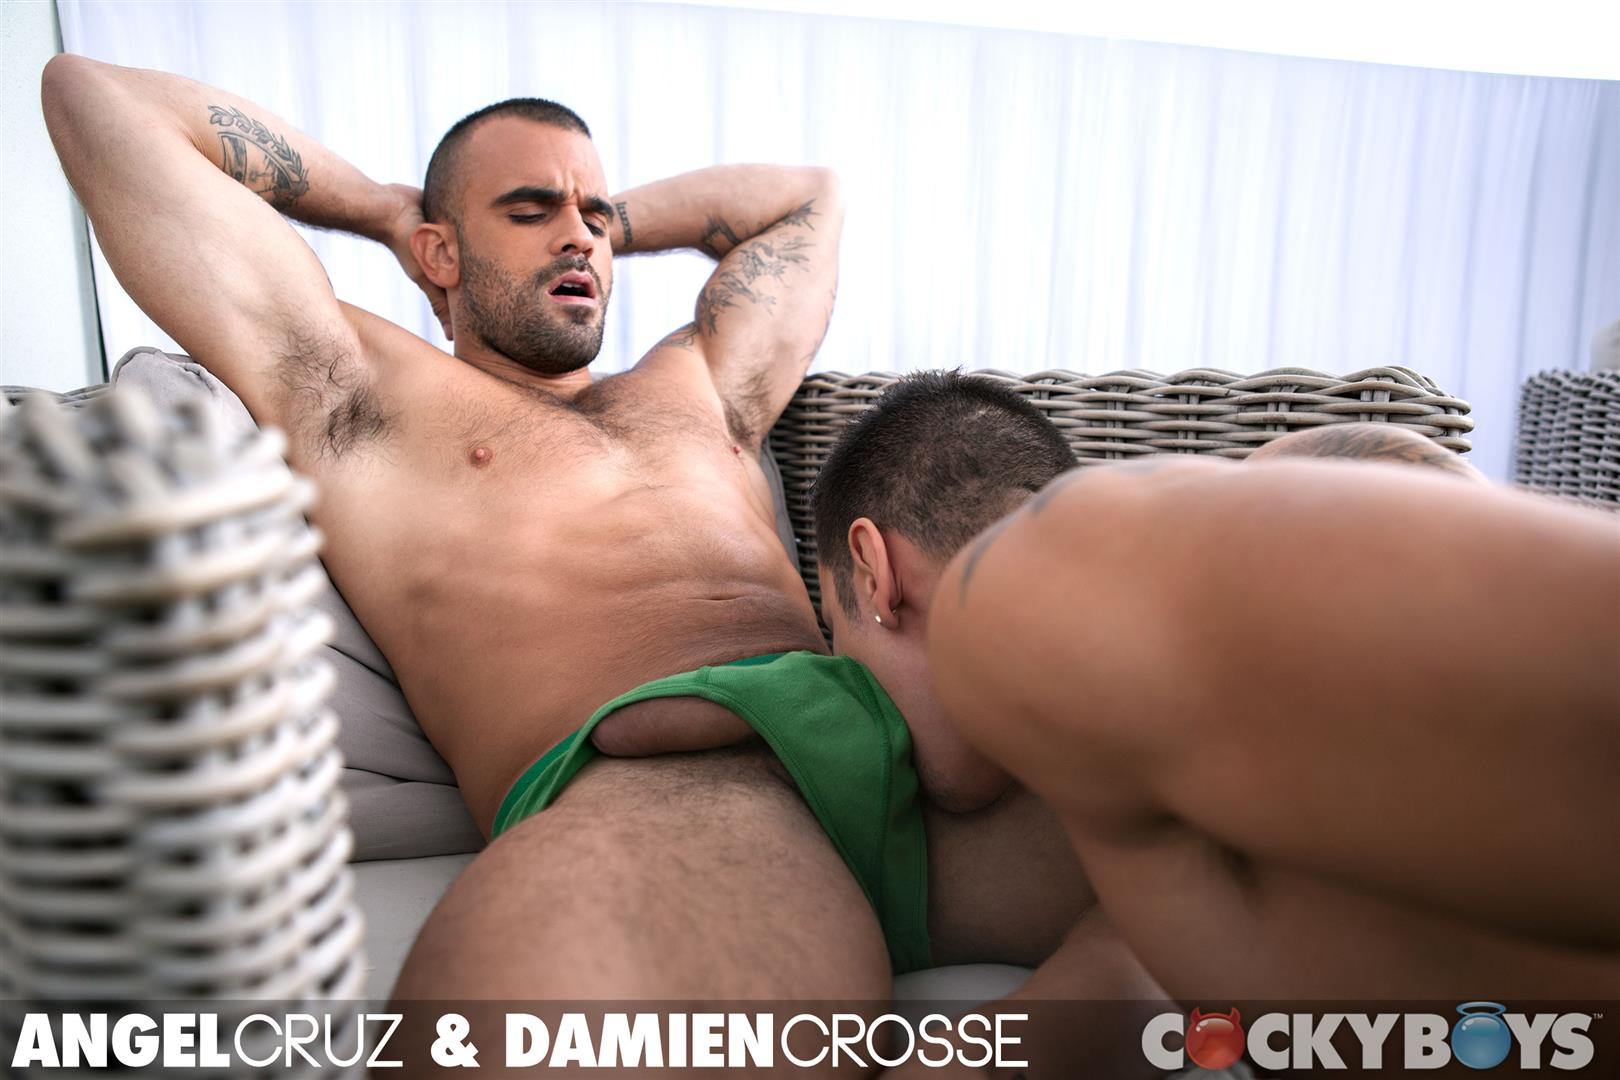 Cockyboys-Angel-Cruz-and-Damien-Cross-Big-Uncut-Cocks-Fucking-Amateur-Gay-Porn-06 Angel Cruz and Damien Cross Flip Fucking With Their Big Uncut Cocks